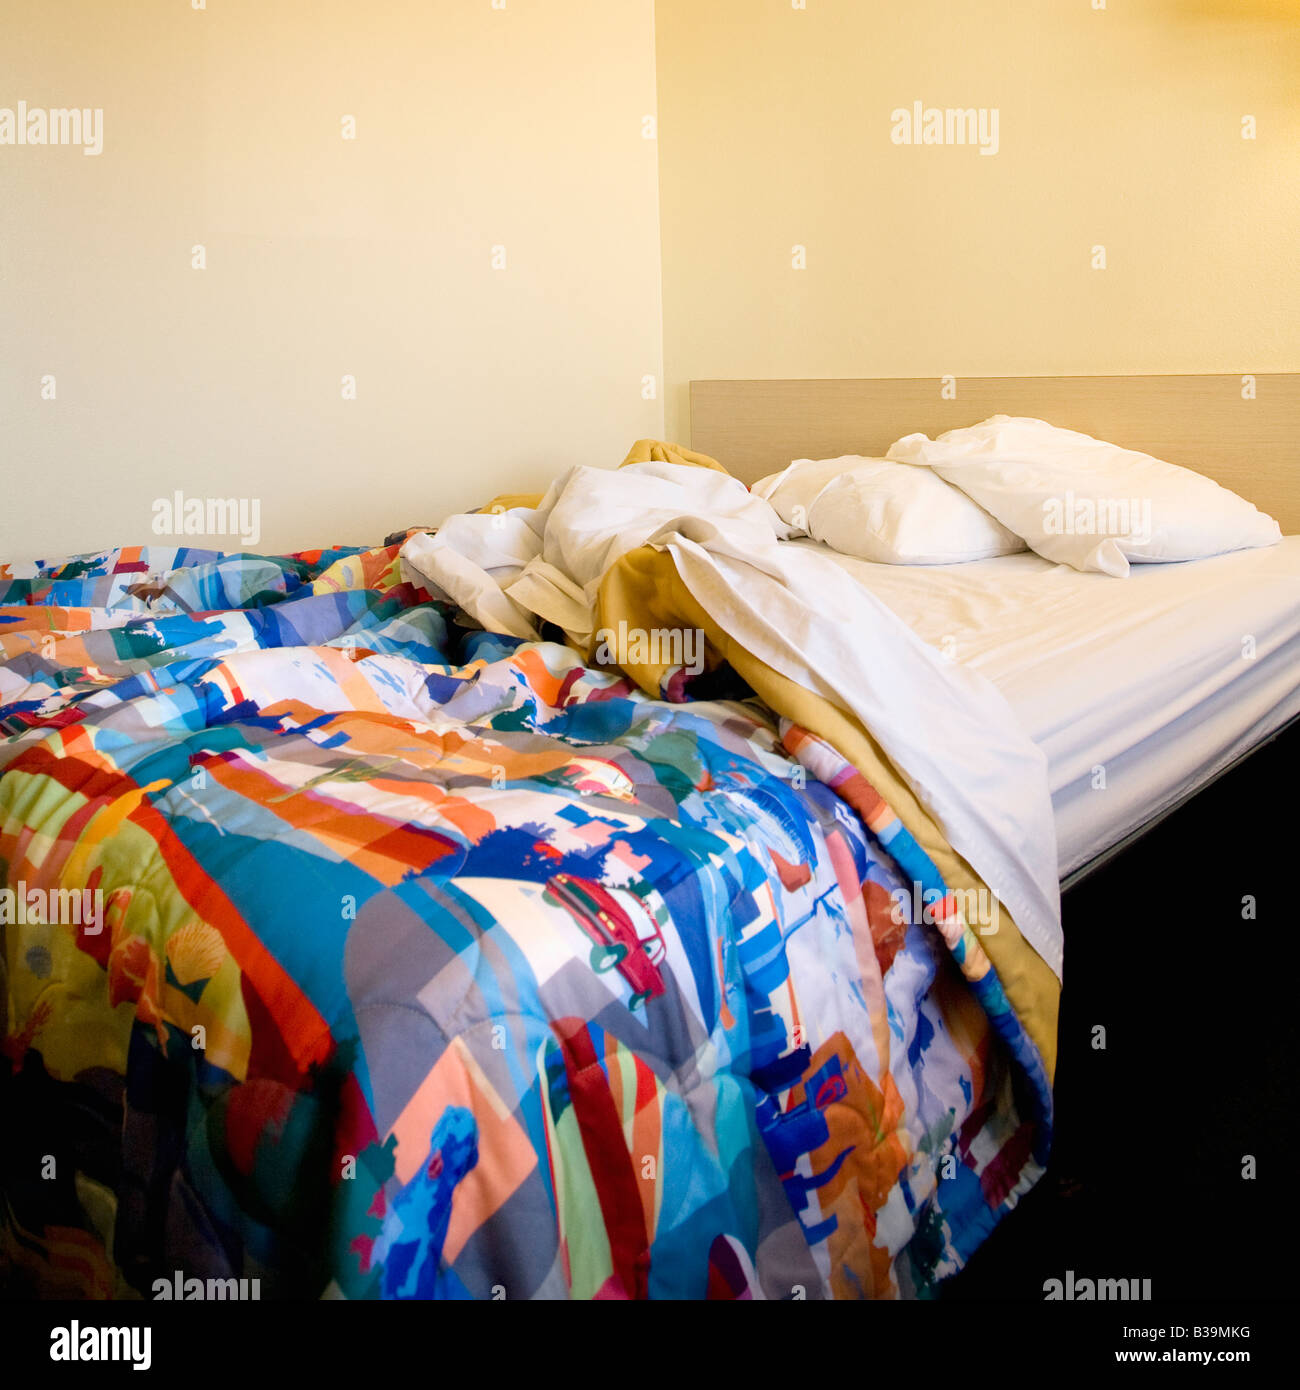 Interior shot of motel room with messy unmade bed - Stock Image